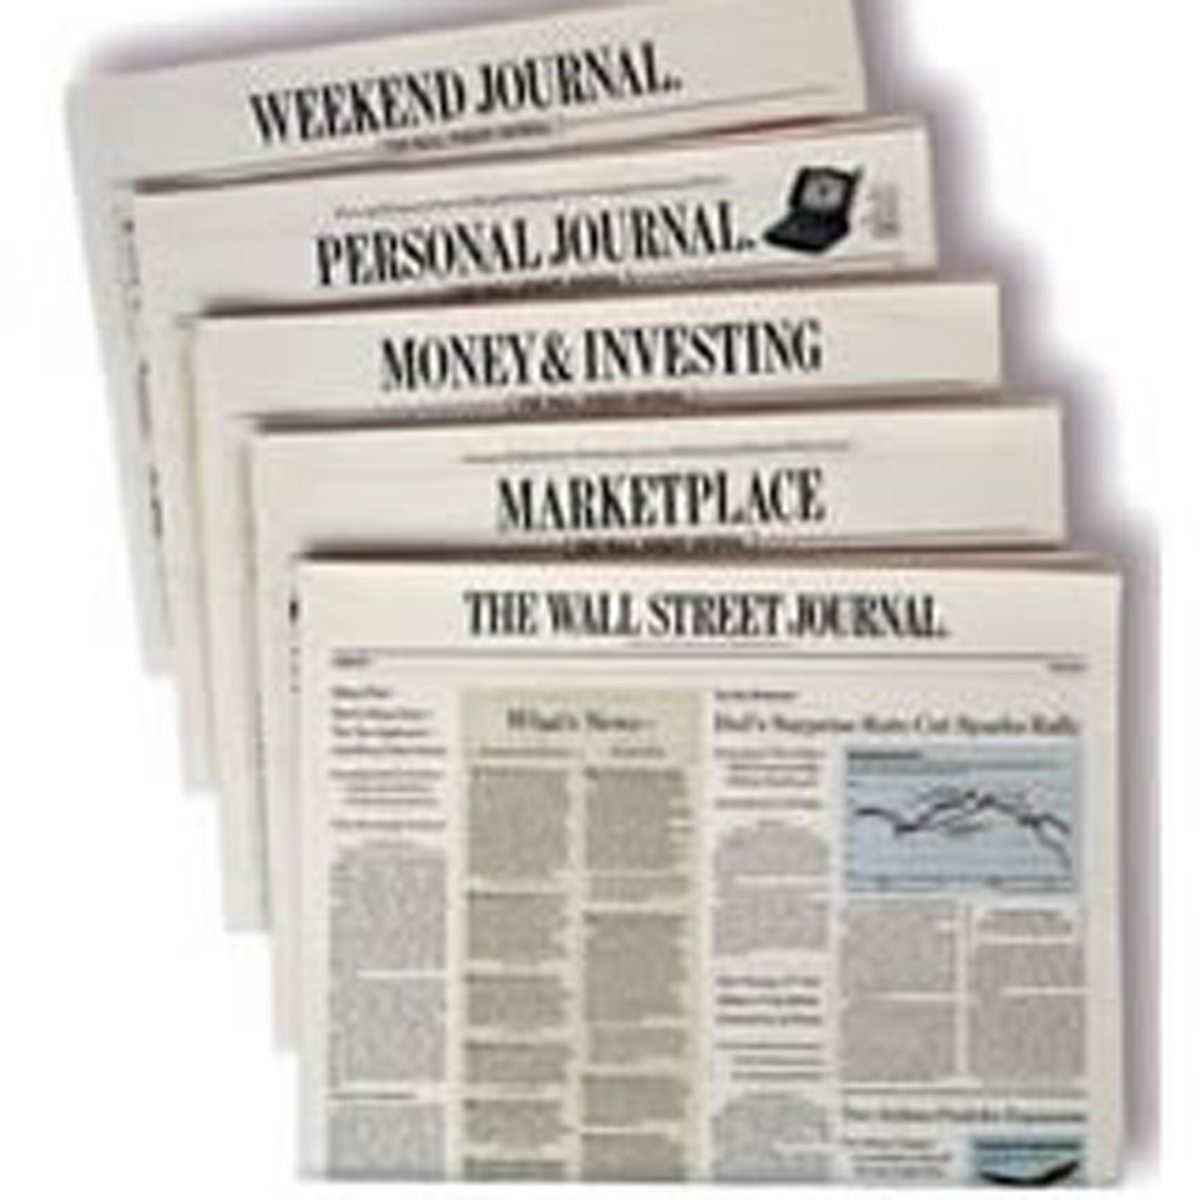 how to get wall street journal for free